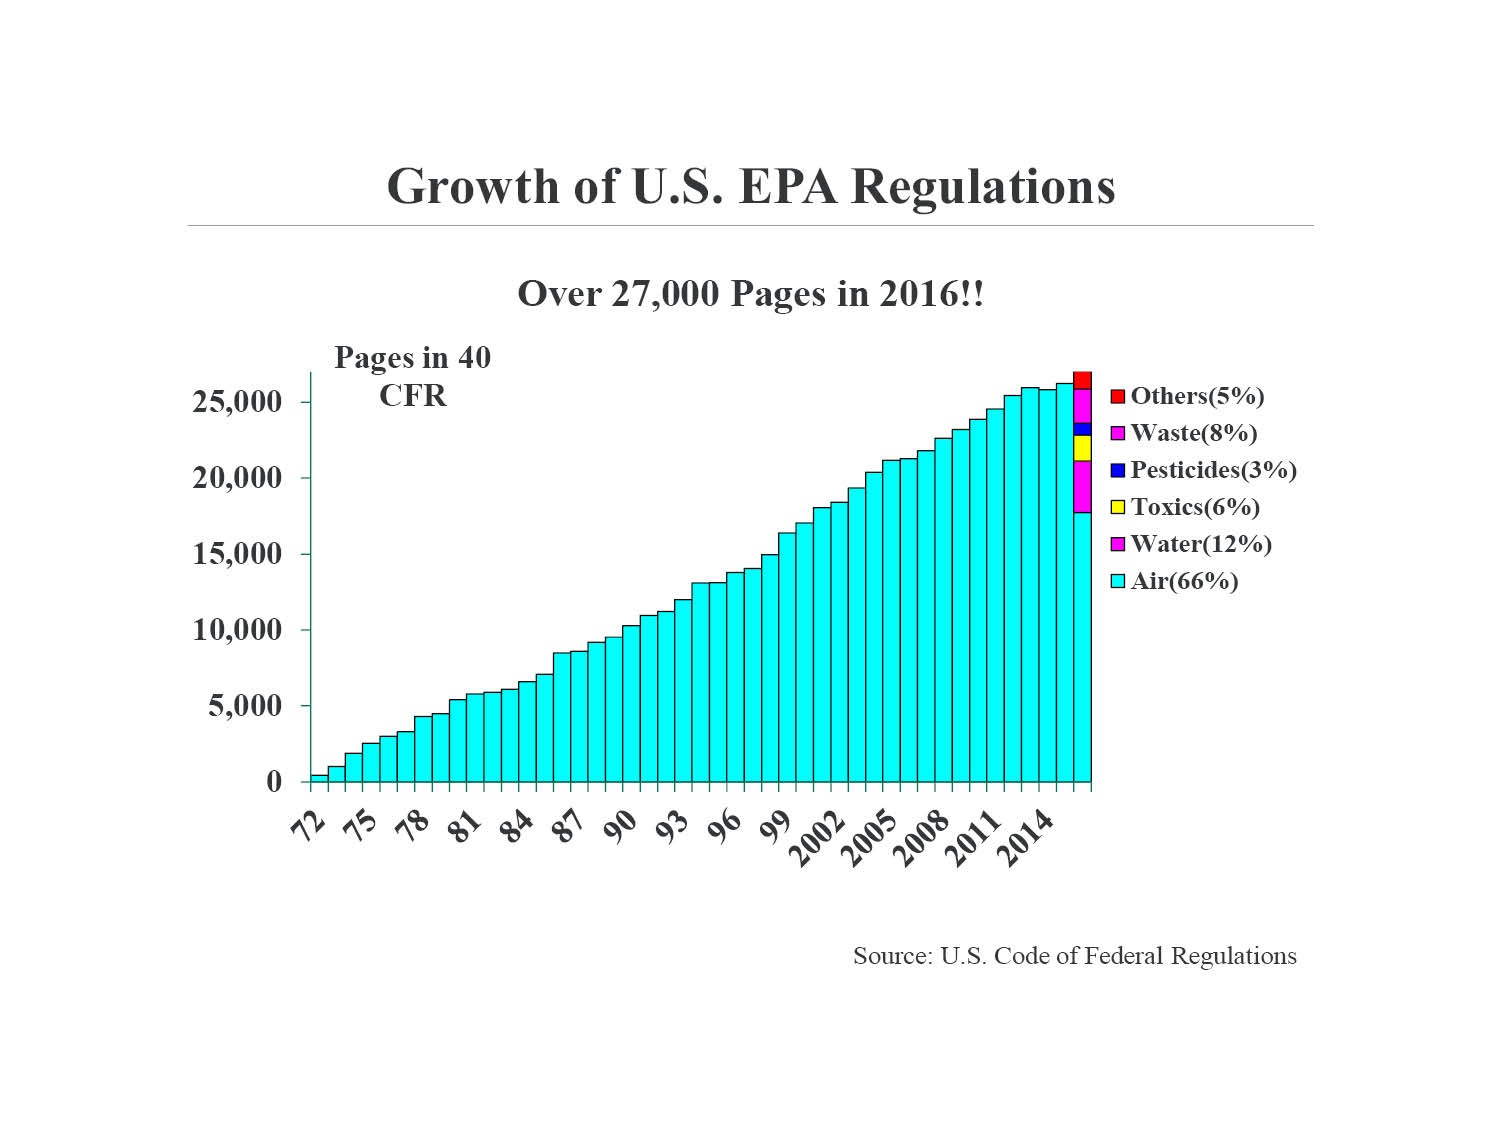 Growth of US EPA Regulations-2.jpg